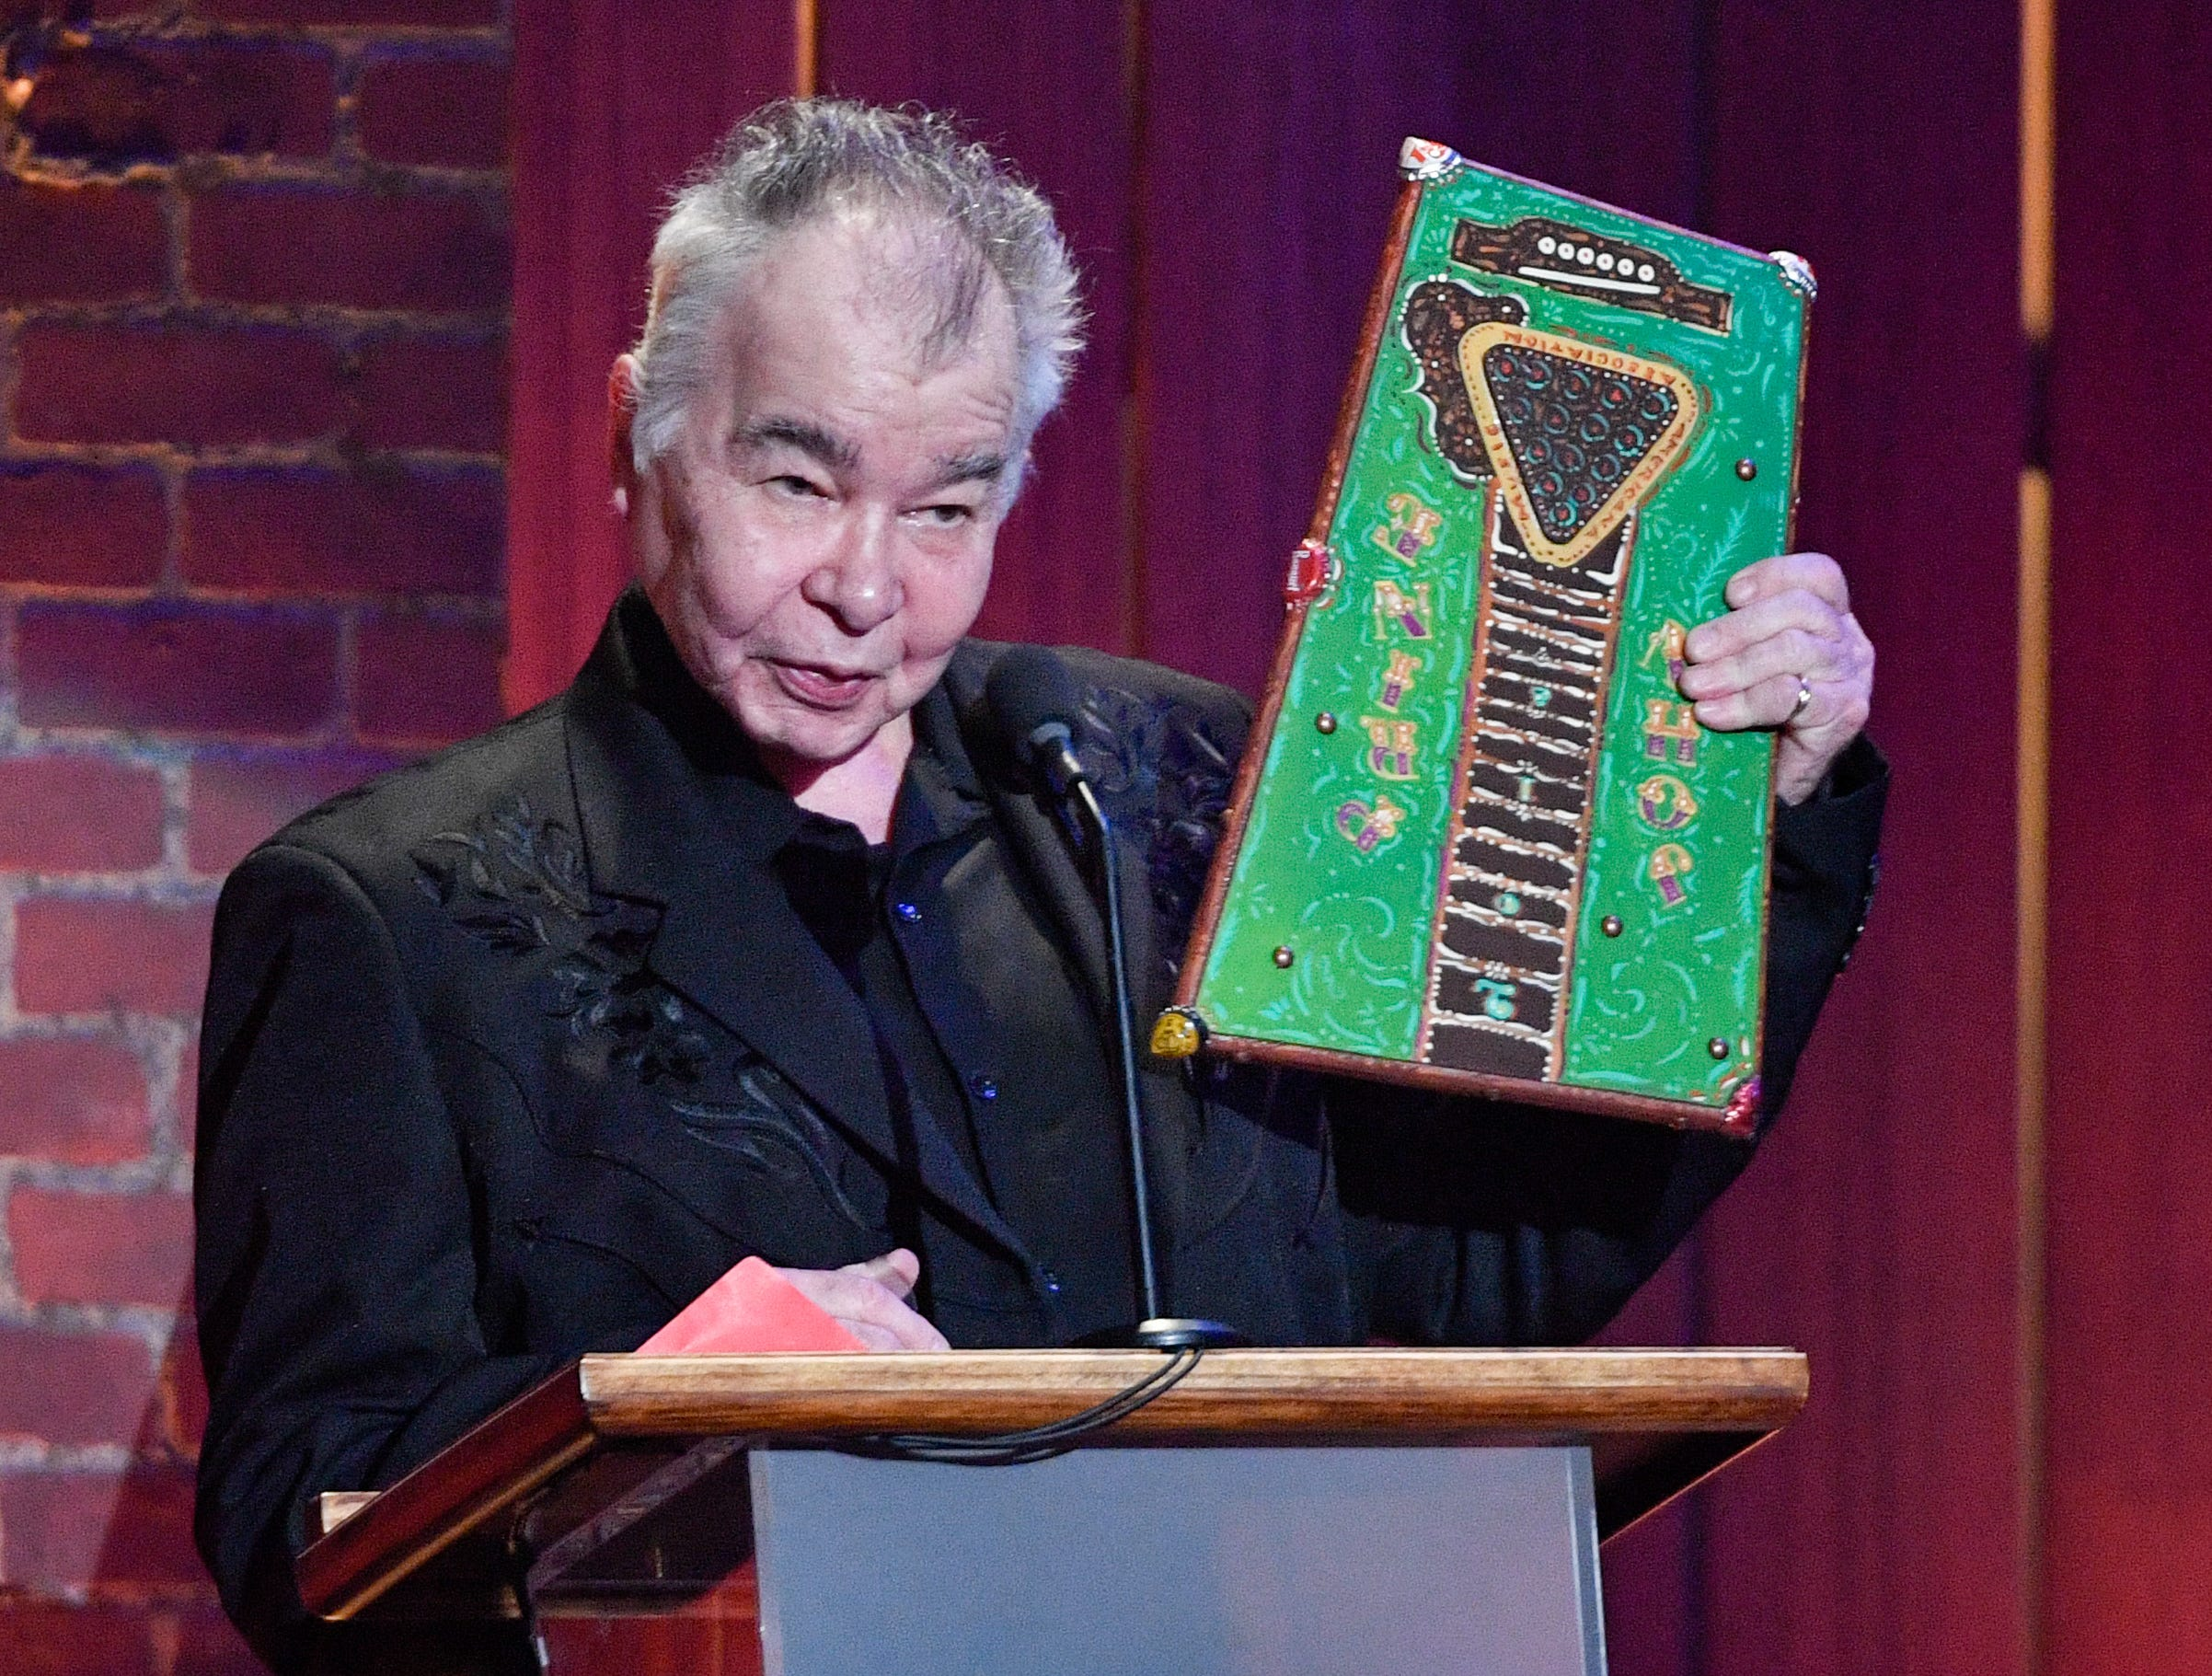 John Prine accepts the Artist of the Year award during the 2018 Americana Honors and Awards show at the Ryman Auditorium in Nashville, Tenn., Wednesday, Sept. 12, 2018.